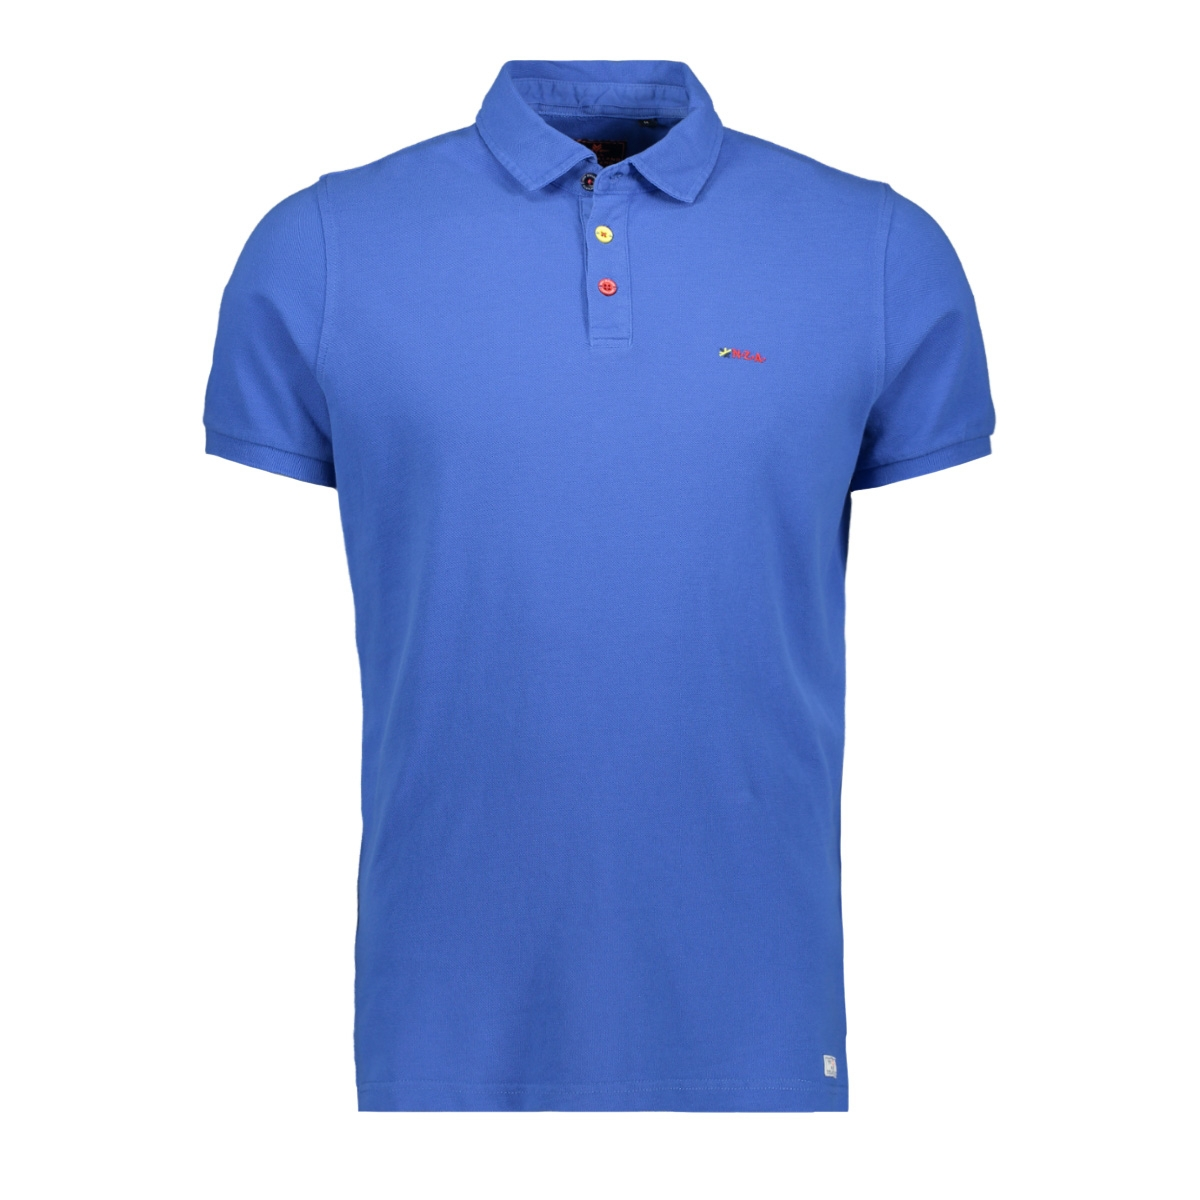 waiapu 20cn150 nza polo 260 new blue